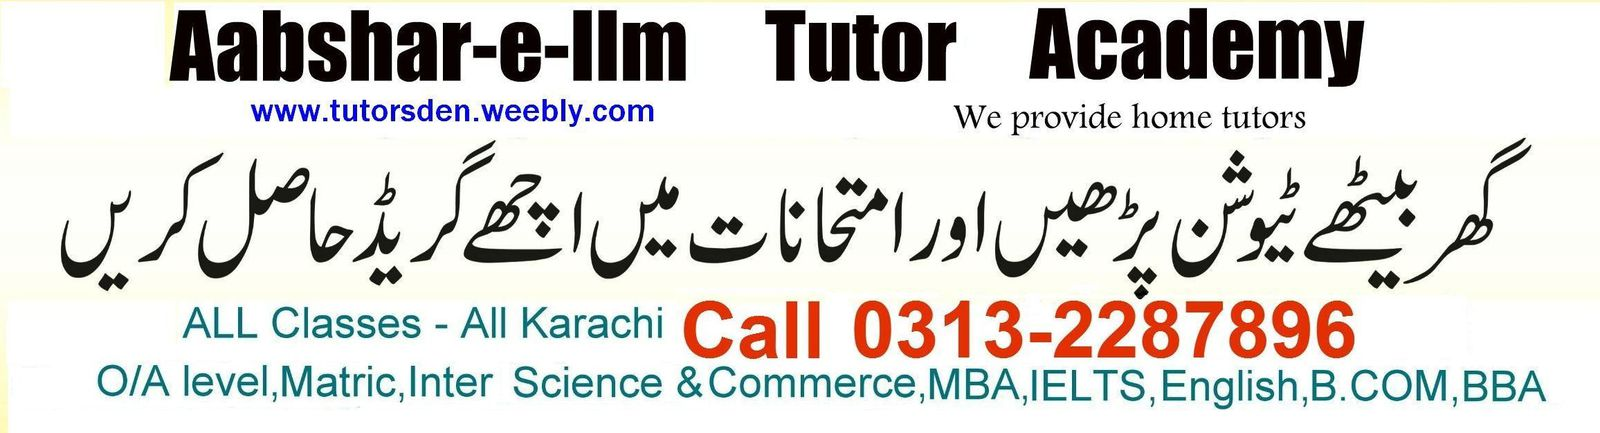 Bookkeeping milet college jhang ma subjects